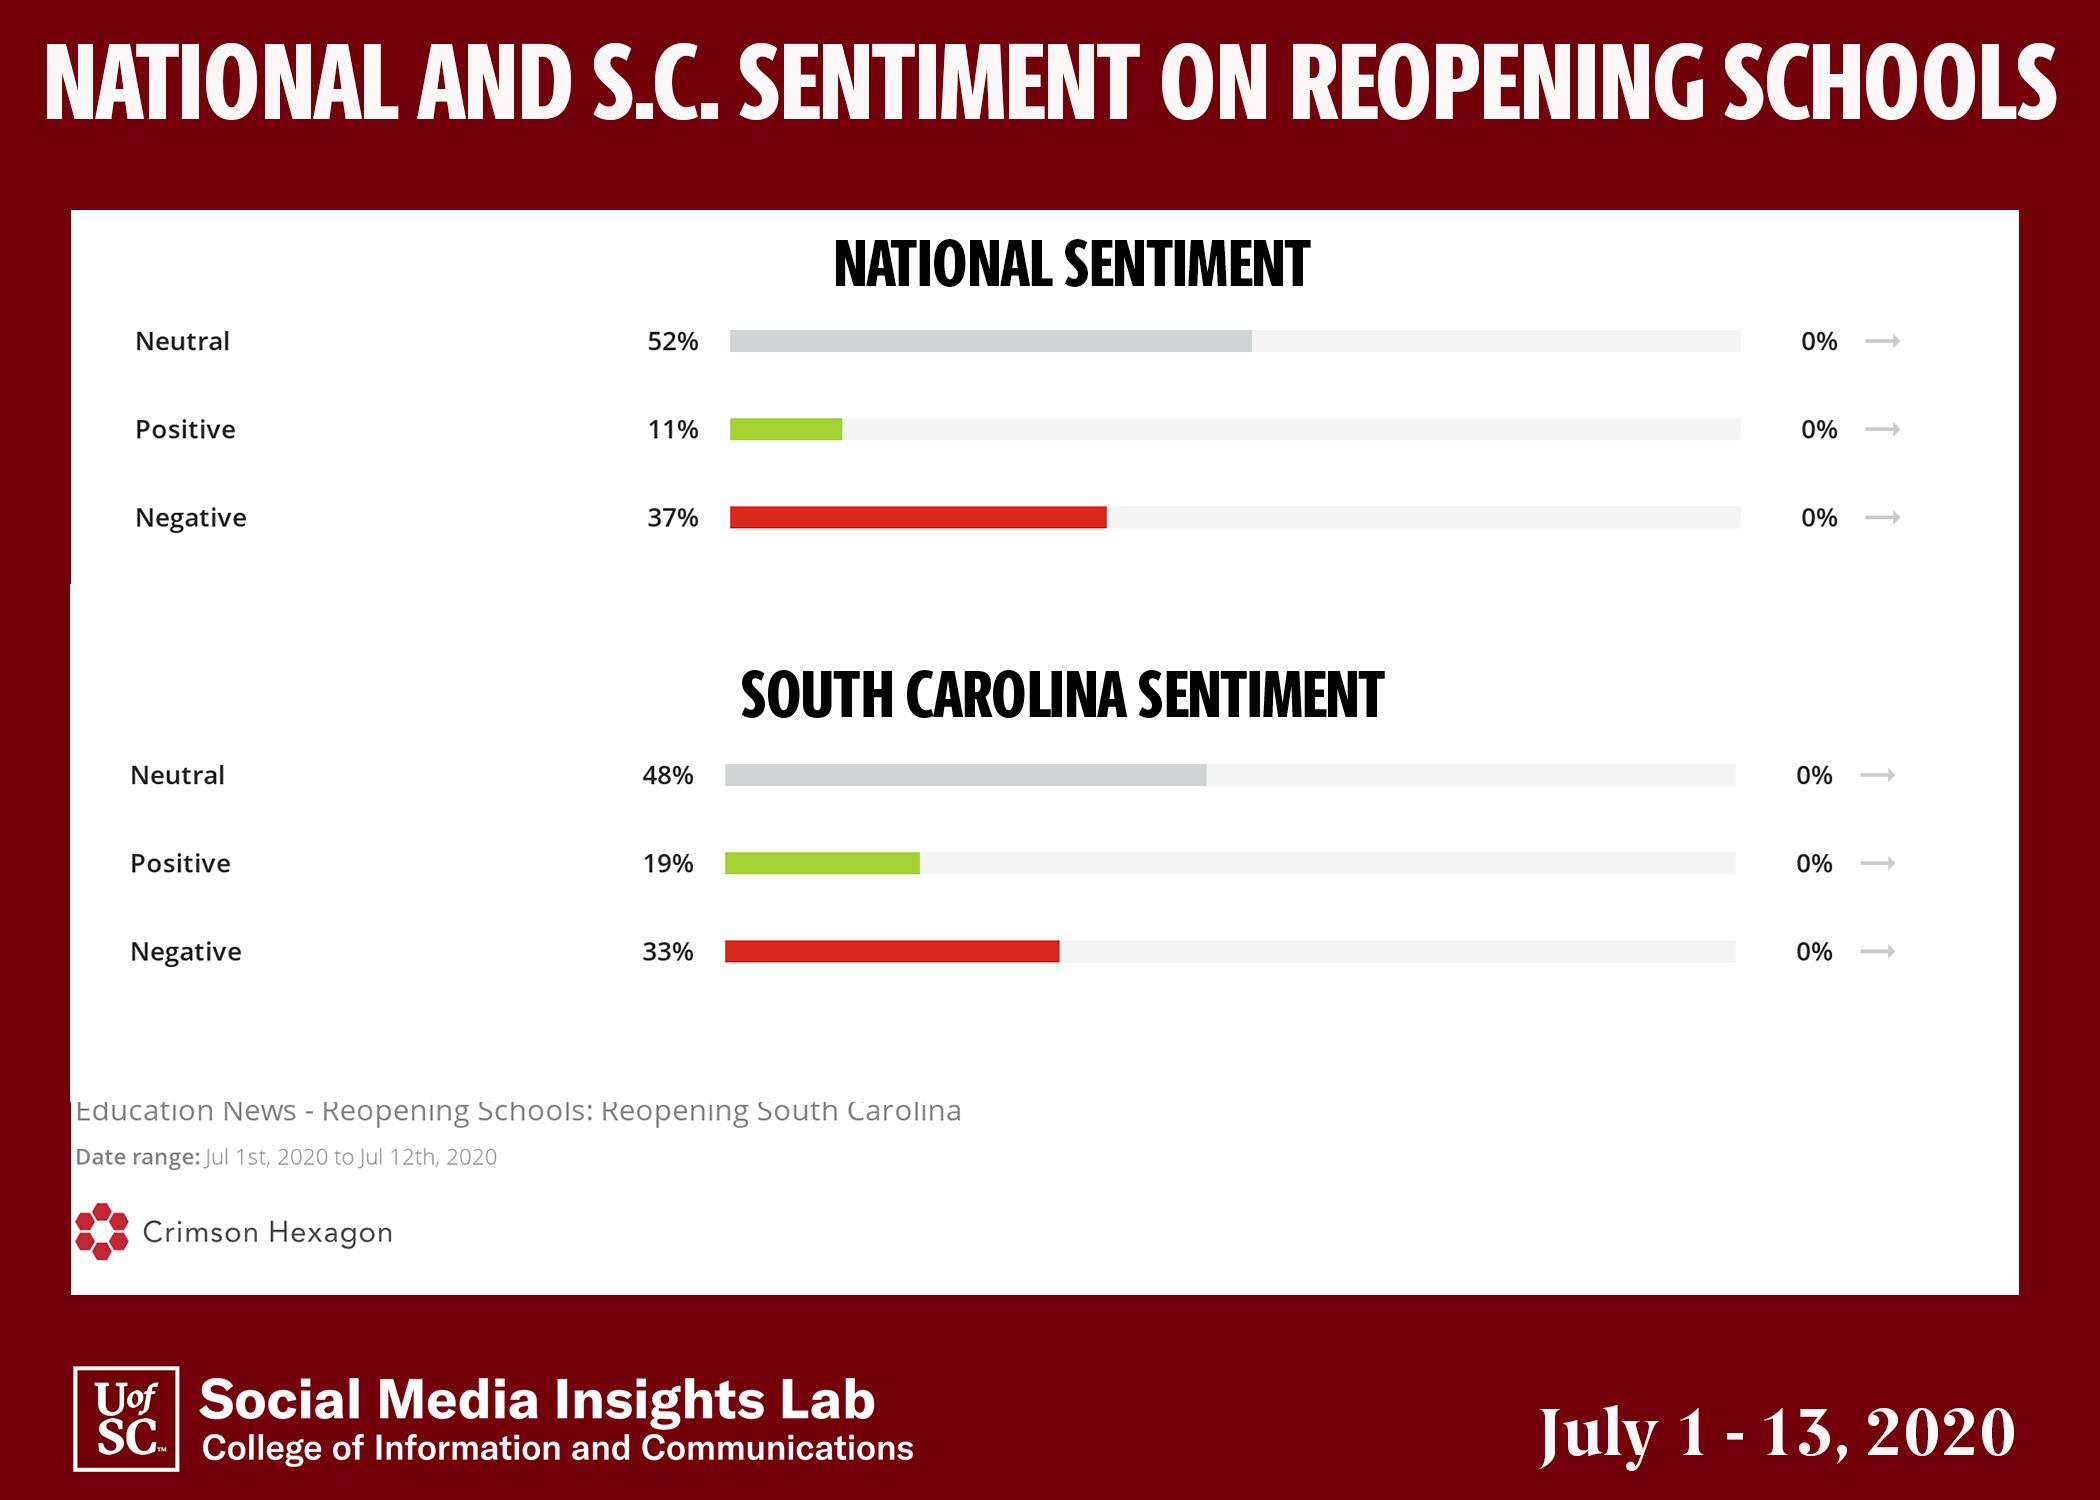 While many posts do not contain sentiment, comments that do are more likely to express concern over schools reopening than support.